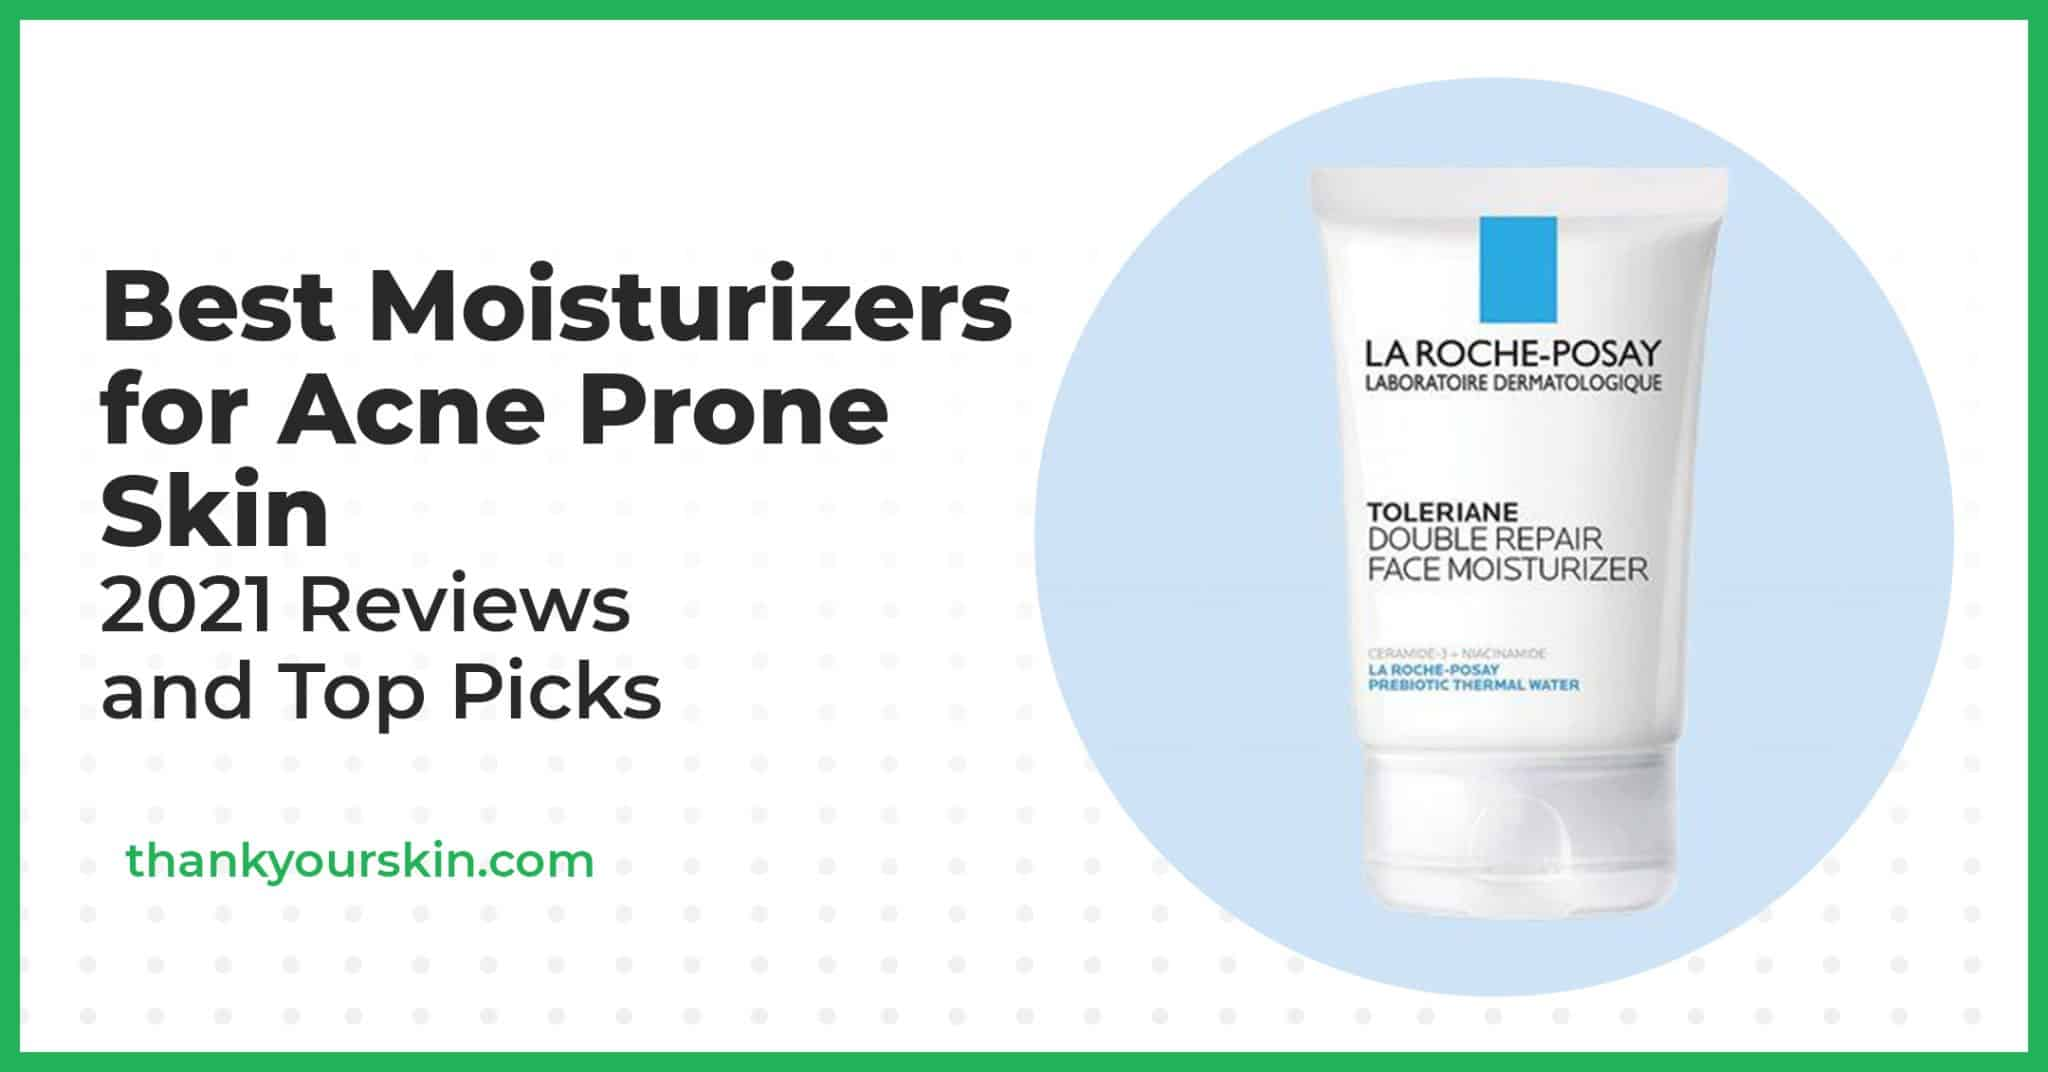 Best Moisturizers for Acne Prone Skin – 2021 Reviews and Top Picks